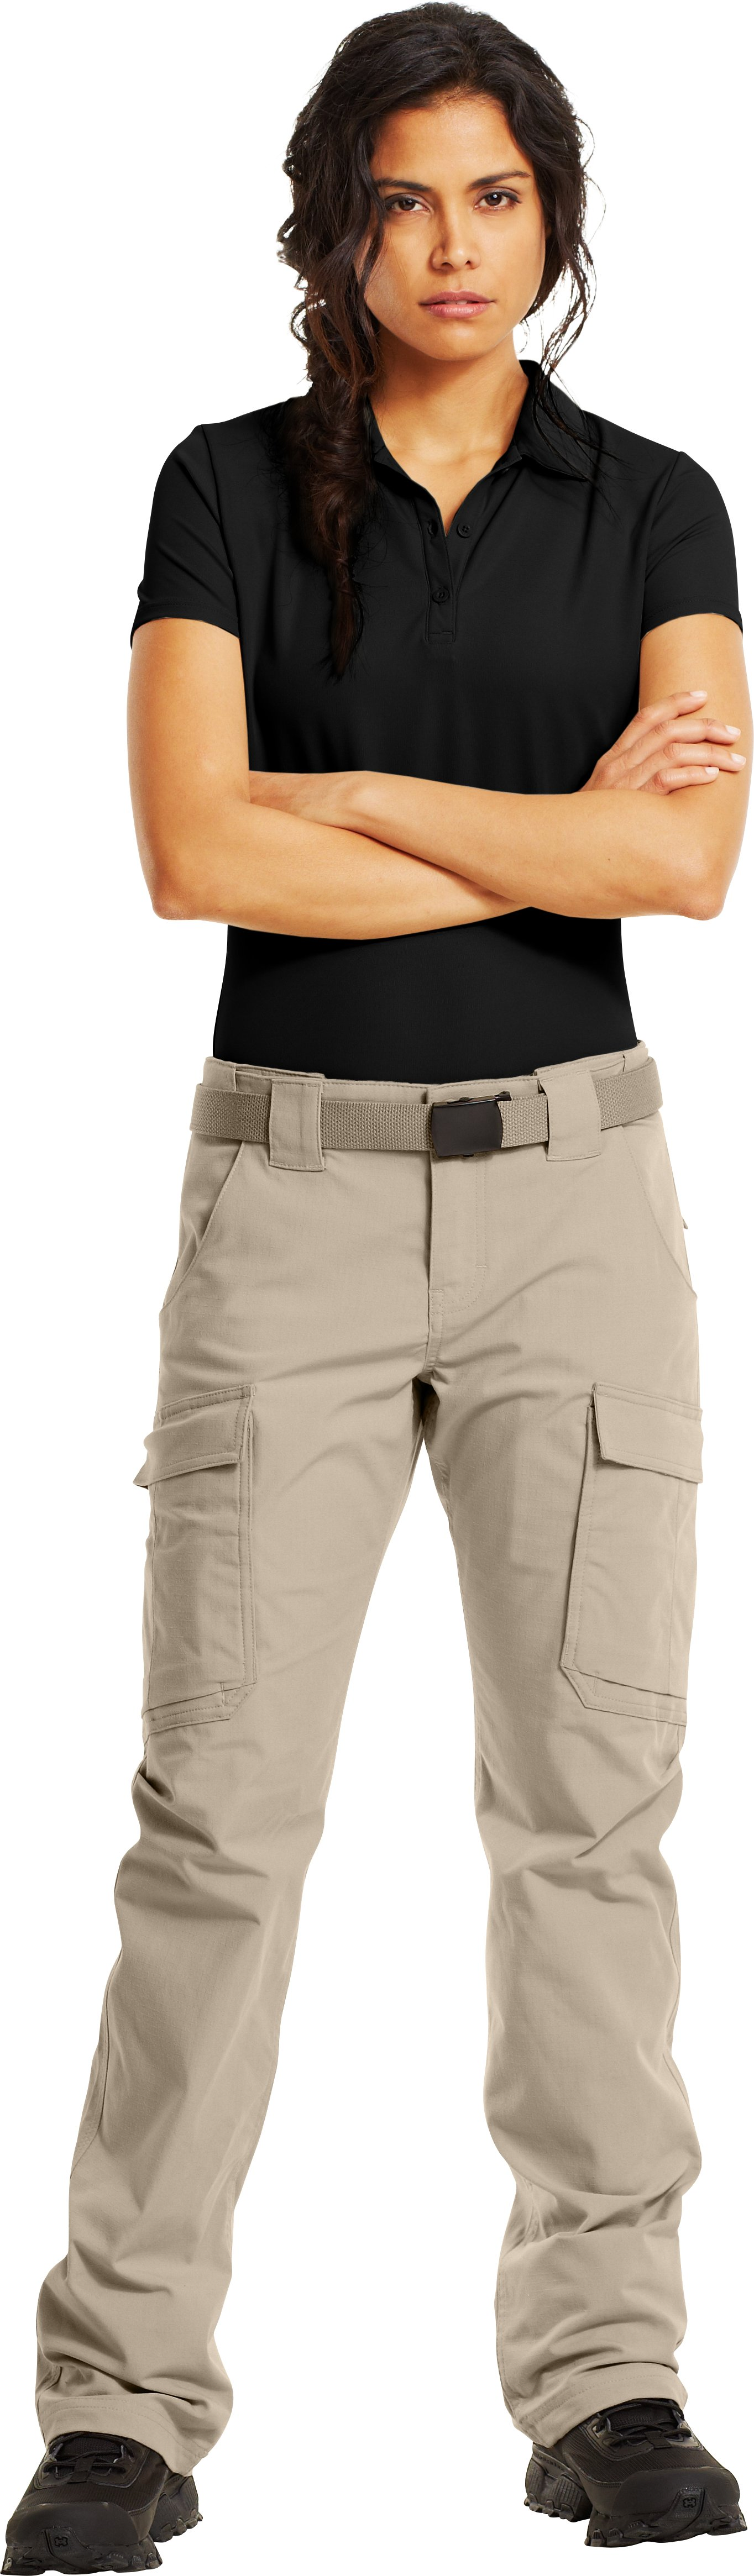 Women's Tactical Duty Pants, Desert Sand, Front